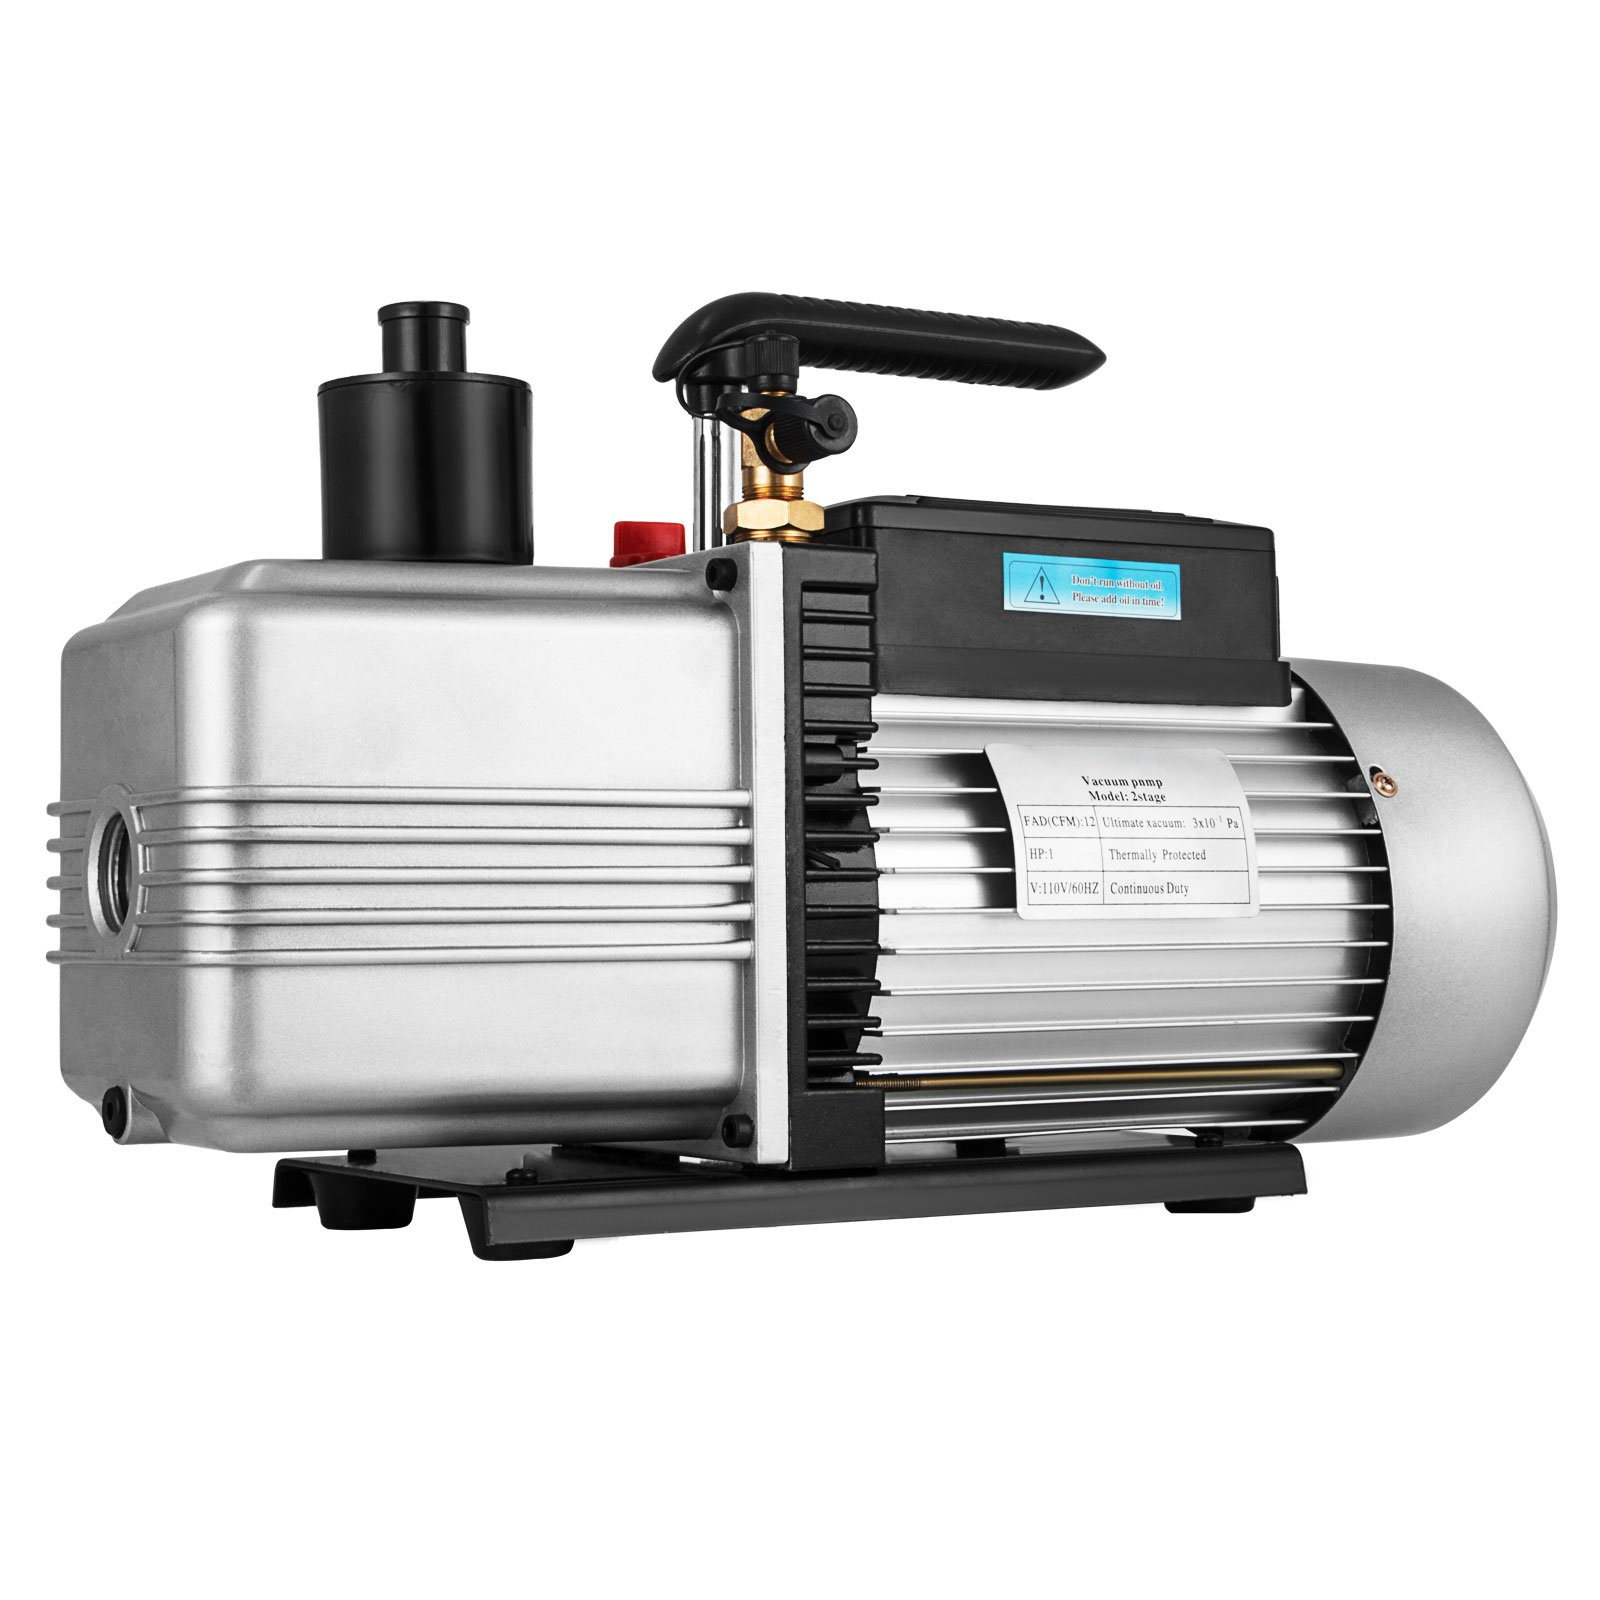 Bestauto Vacuum Pump 12CFM 1HP Vane Vacuum Pump Two Stage HVAC Rotary Auto AC Refrigerant Vacuum Pump for Wine or Epoxy, Milking Cow or Lamb, Medical, Food Processing